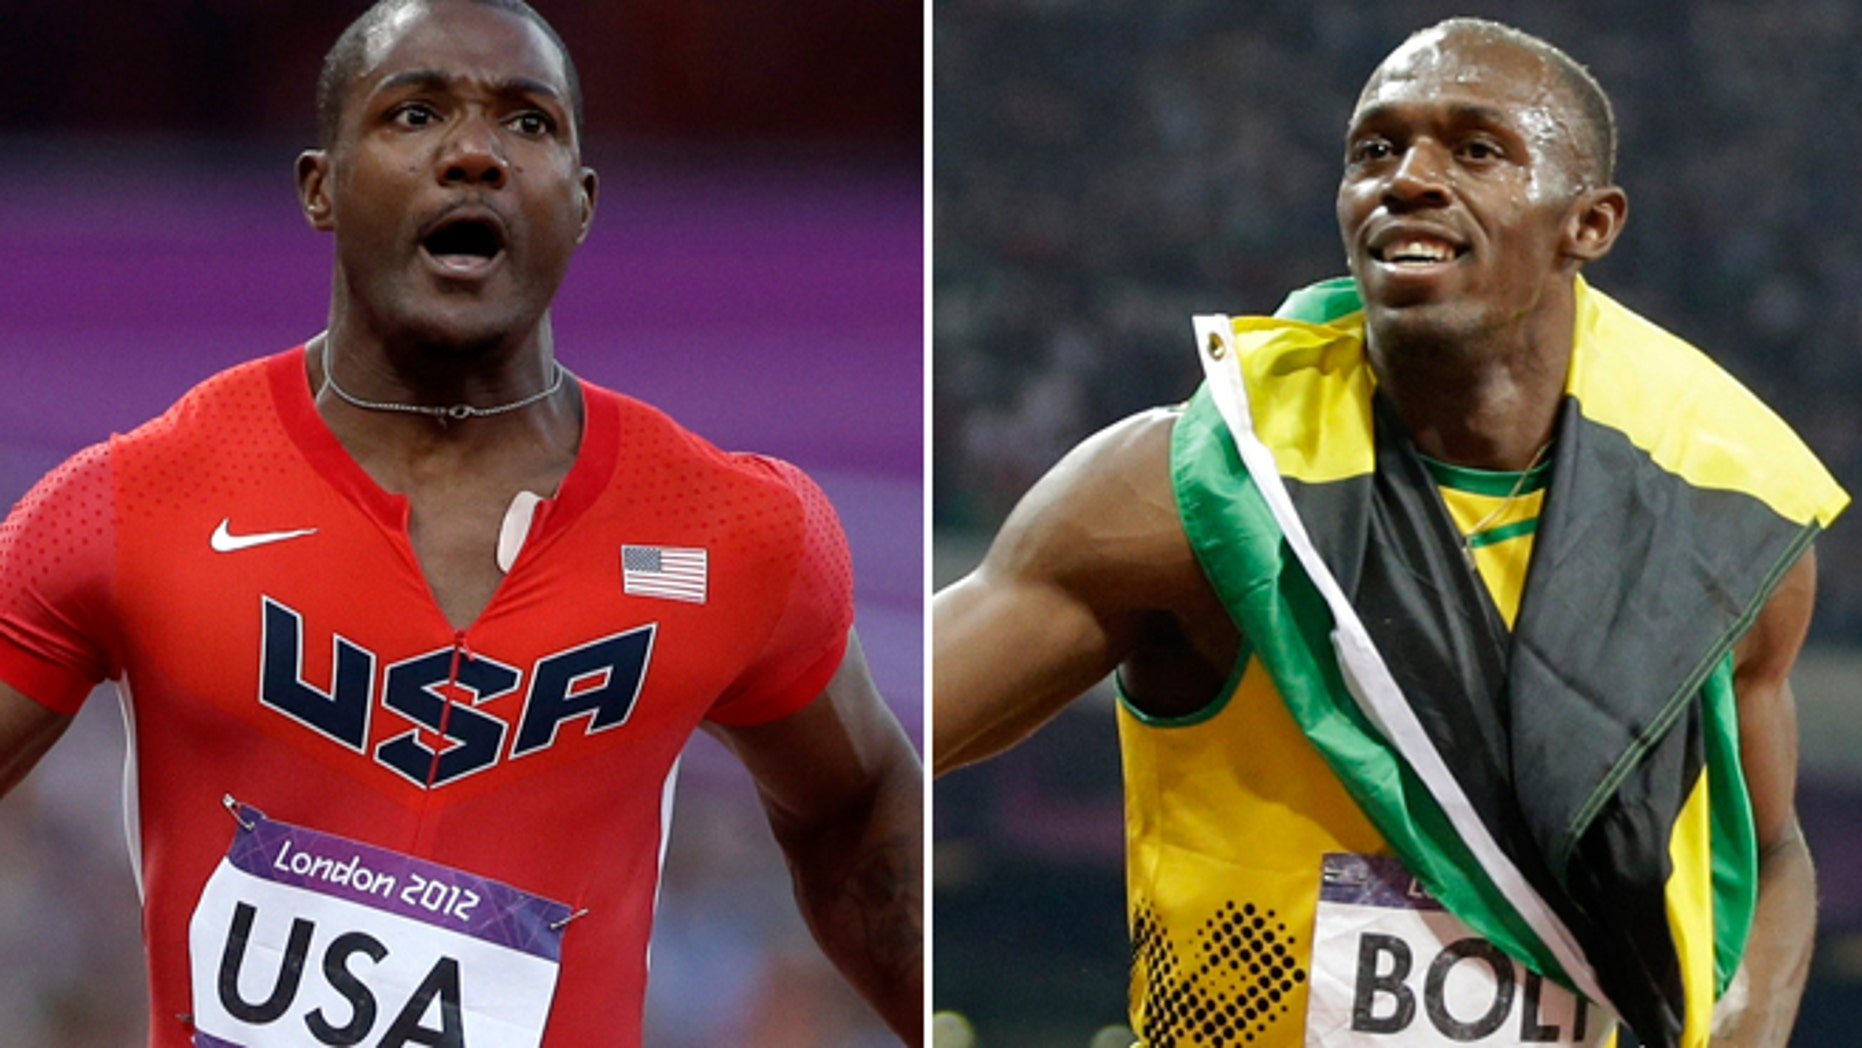 Justin Gatlin and the American relay team will face off Saturday against Usain Bolt and the Jamaican team in the 4x100-meter relay.